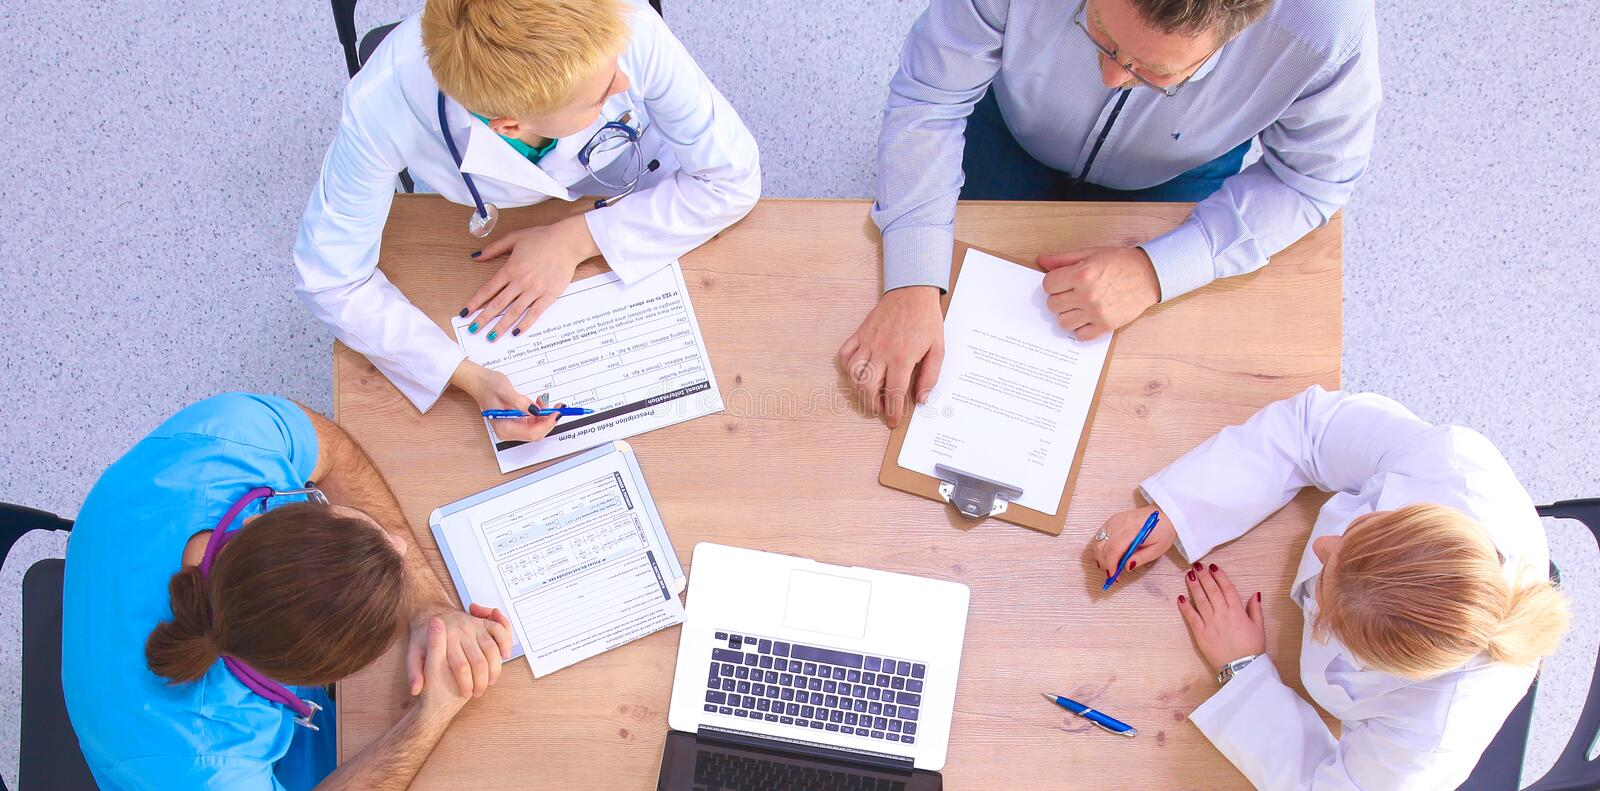 Male and female doctors working on reports in medical office.  royalty free stock image